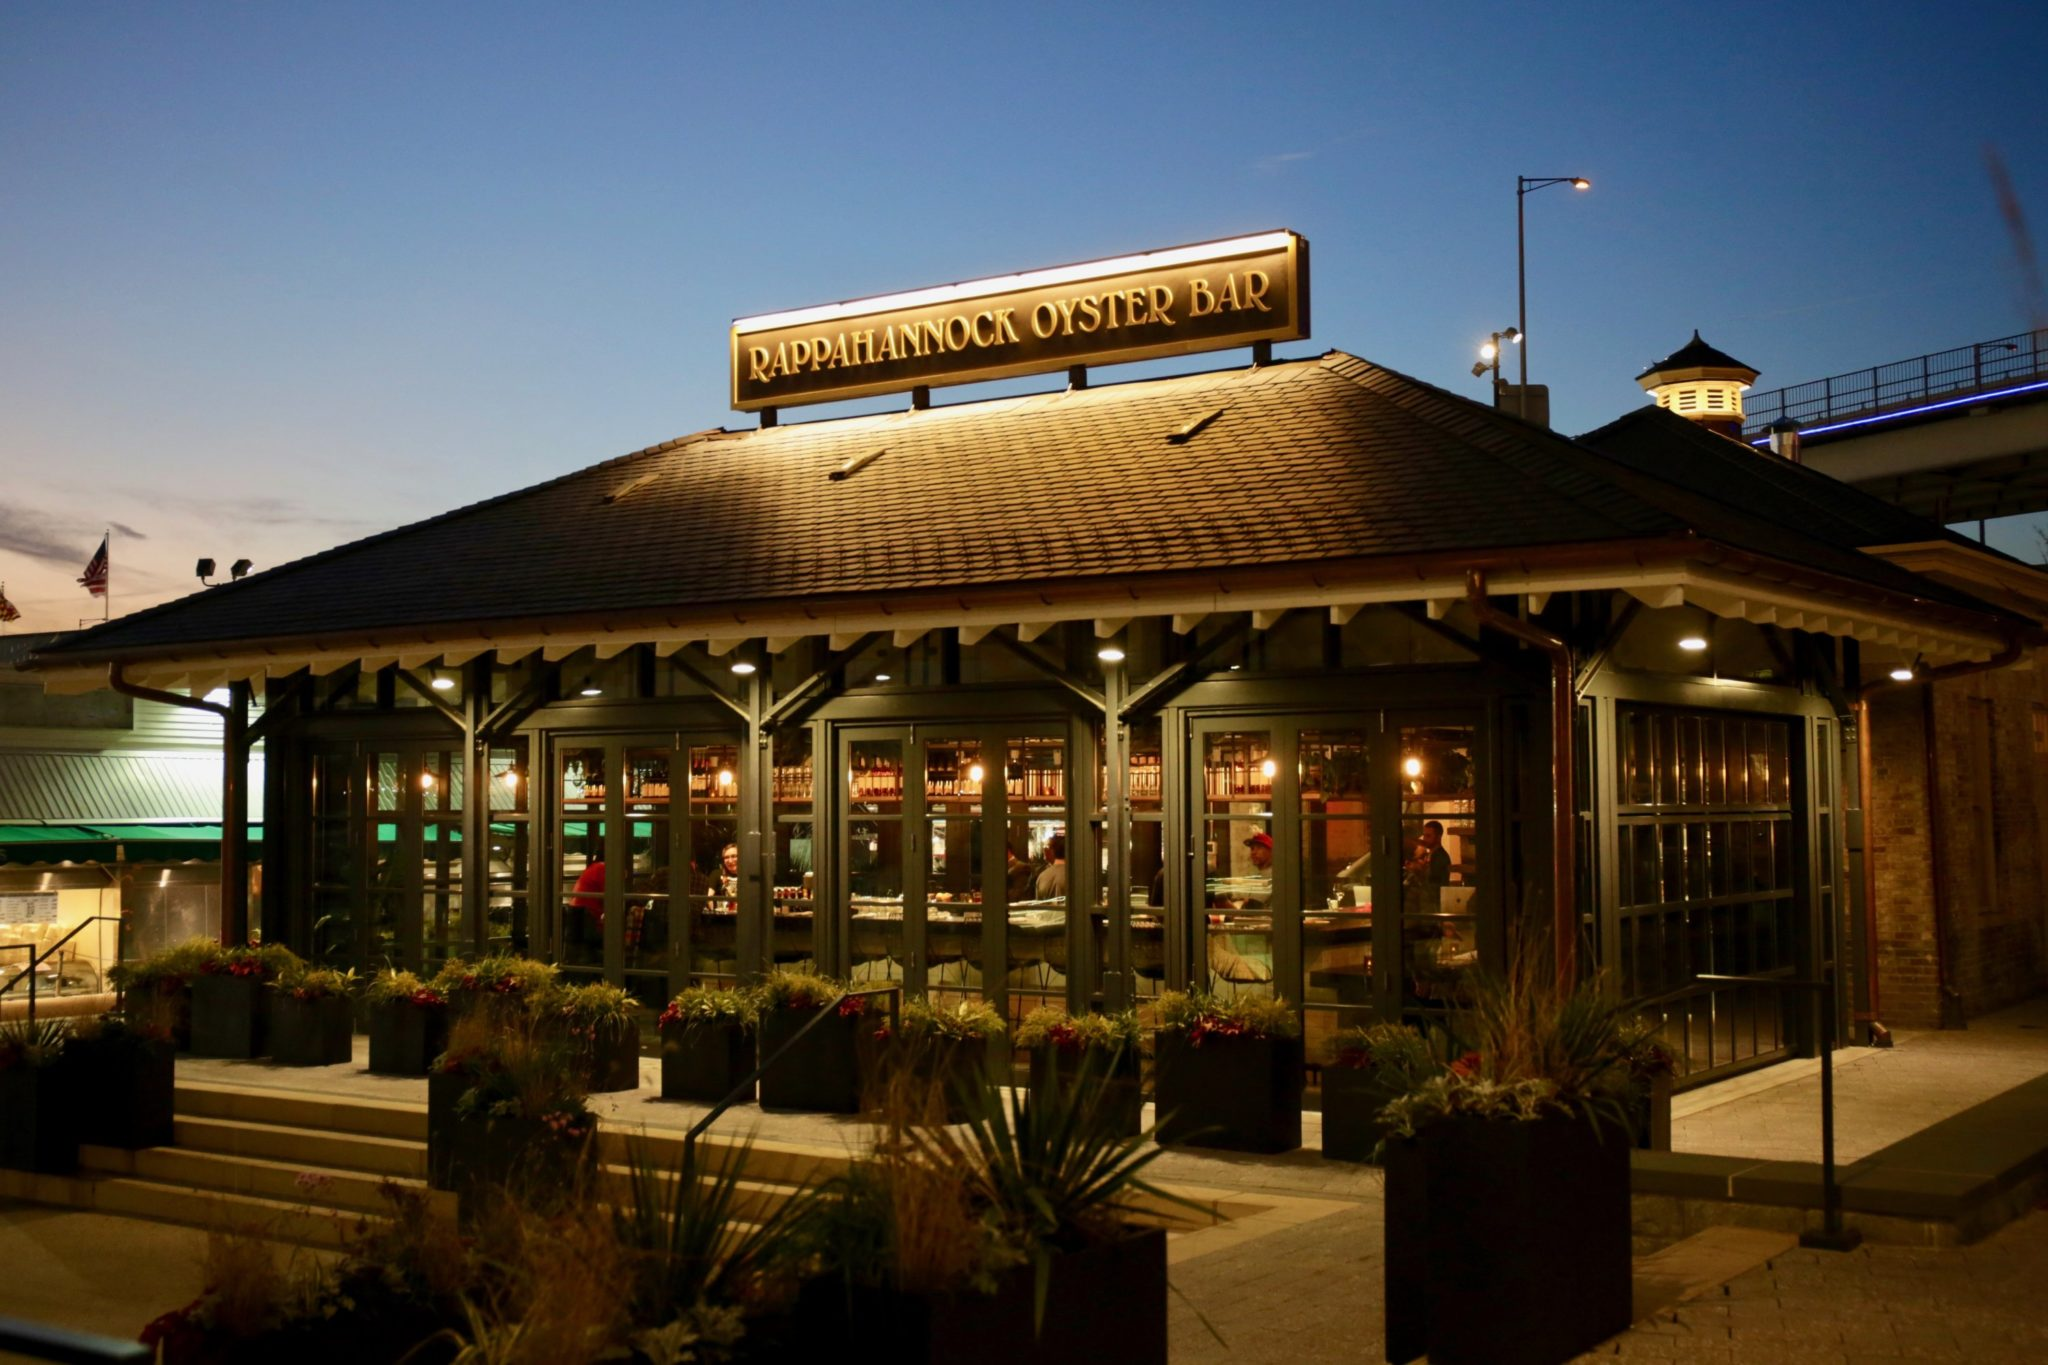 Rappahannock Oyster Bar Opens A Waterfront Location At The